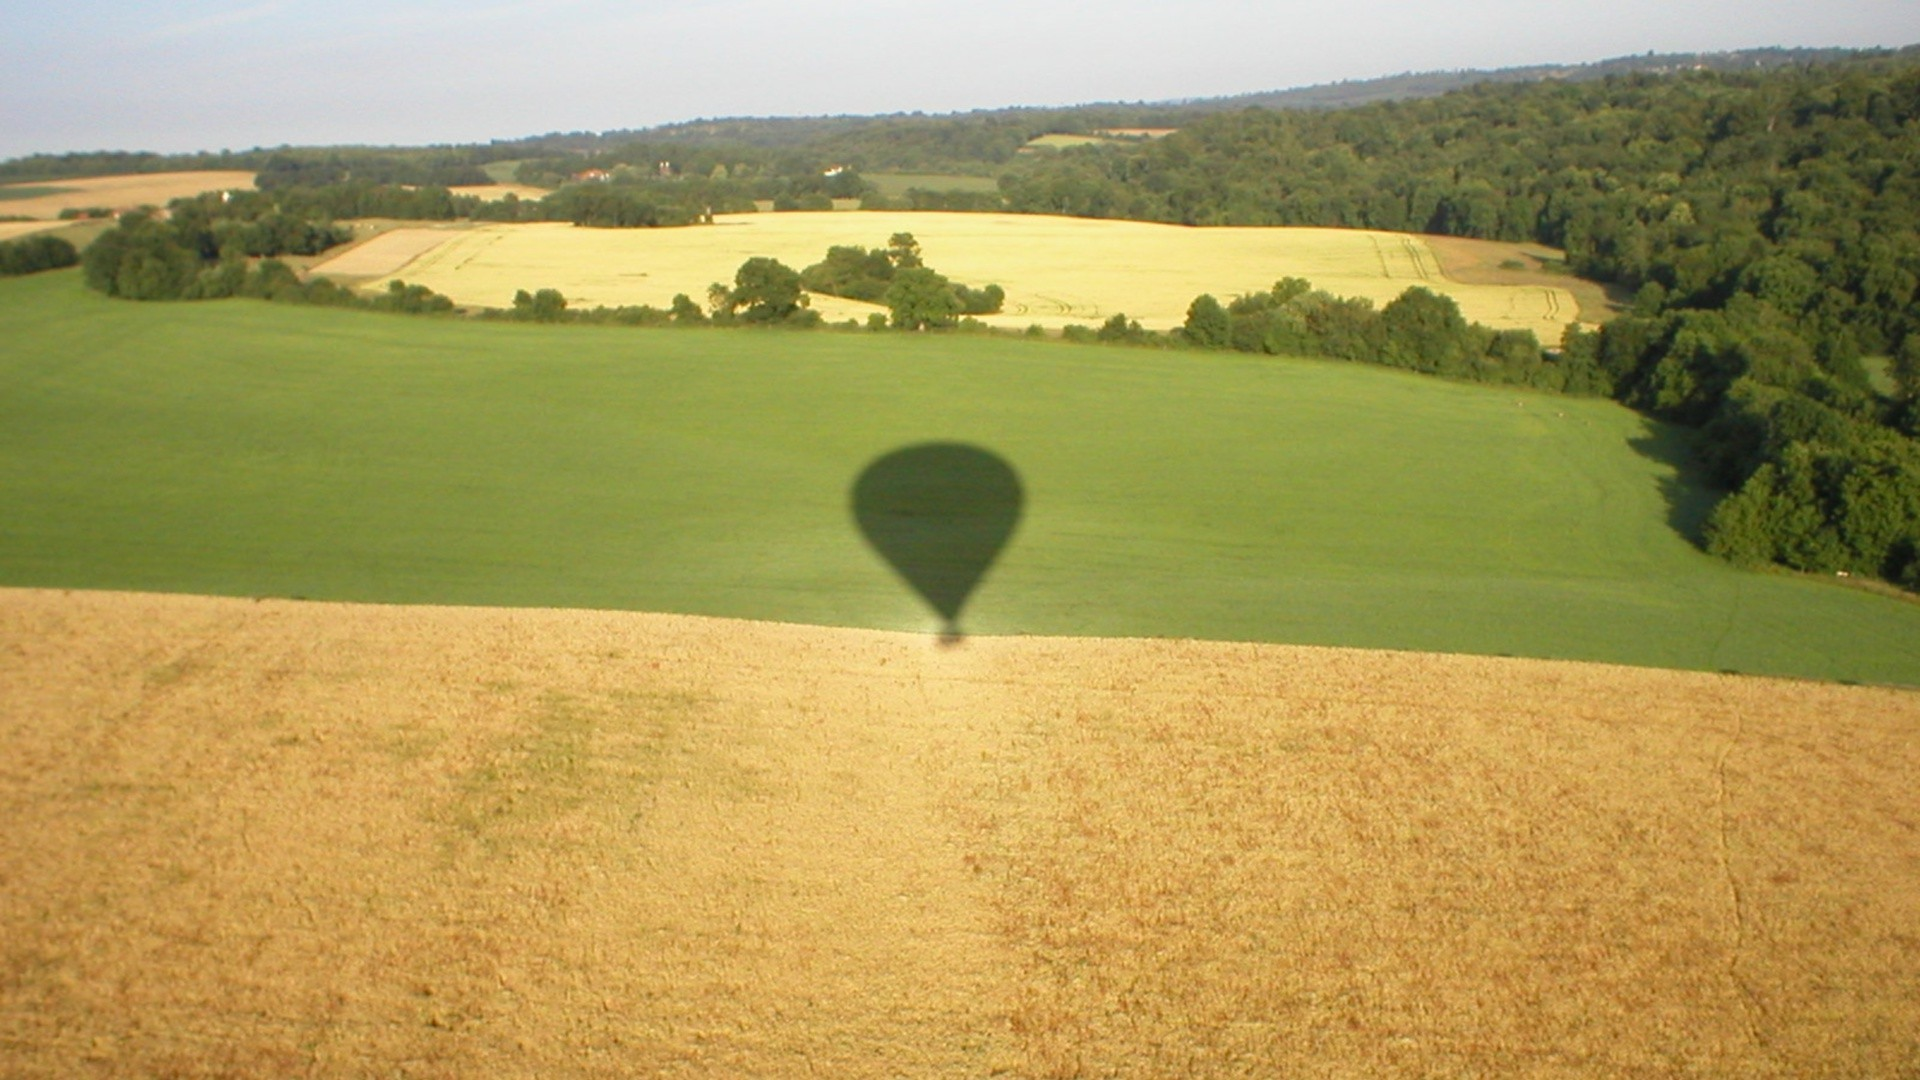 Shadow of the hot air balloon on the field